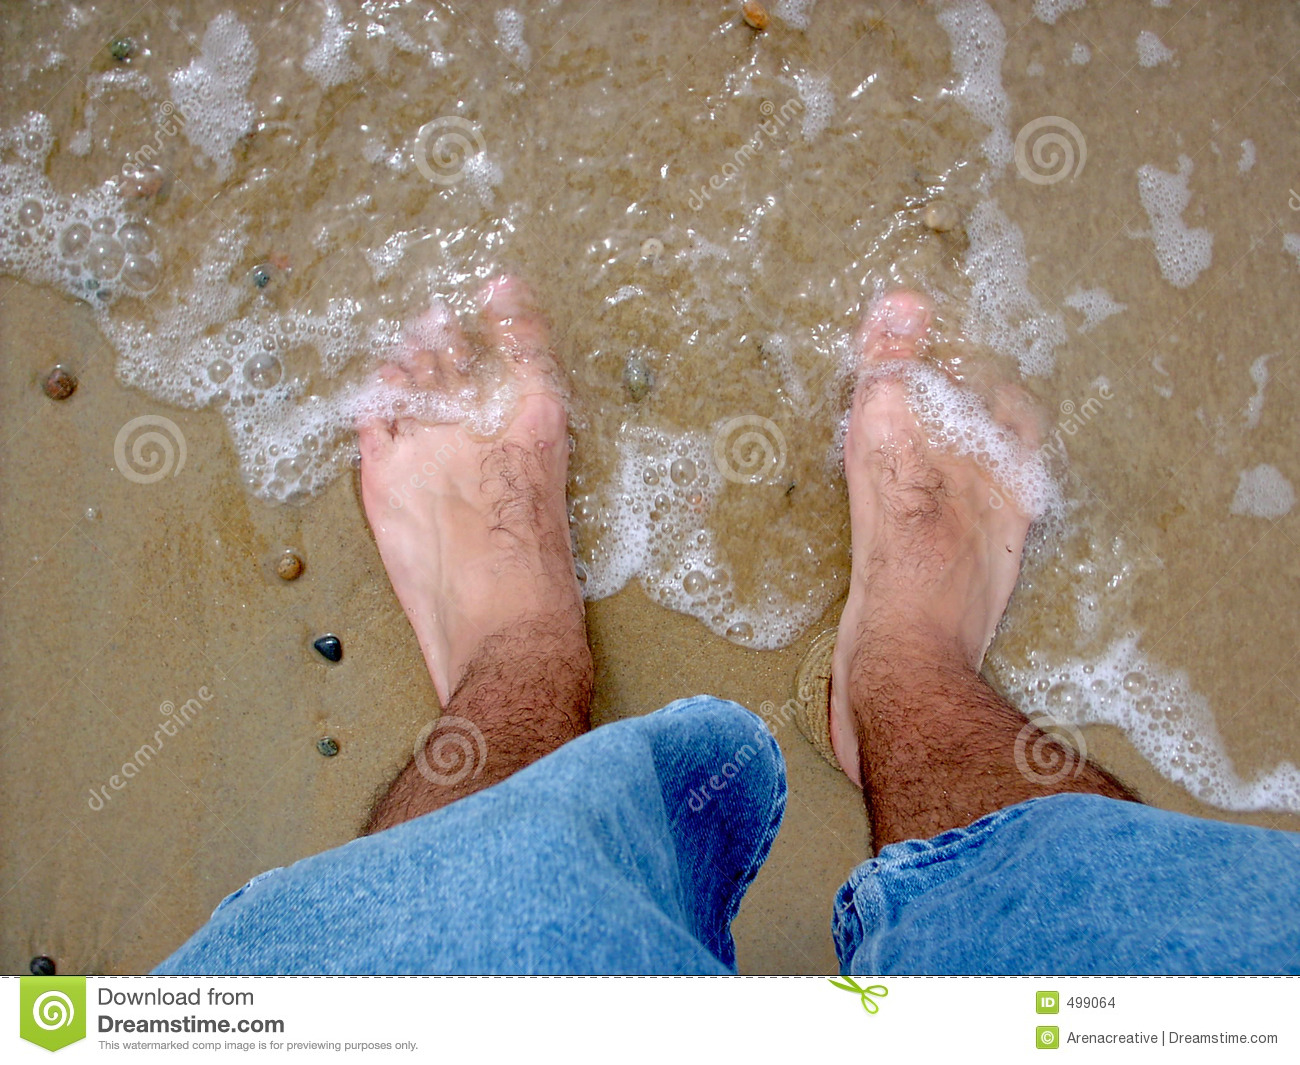 Hairy, Cold, Wet Feet